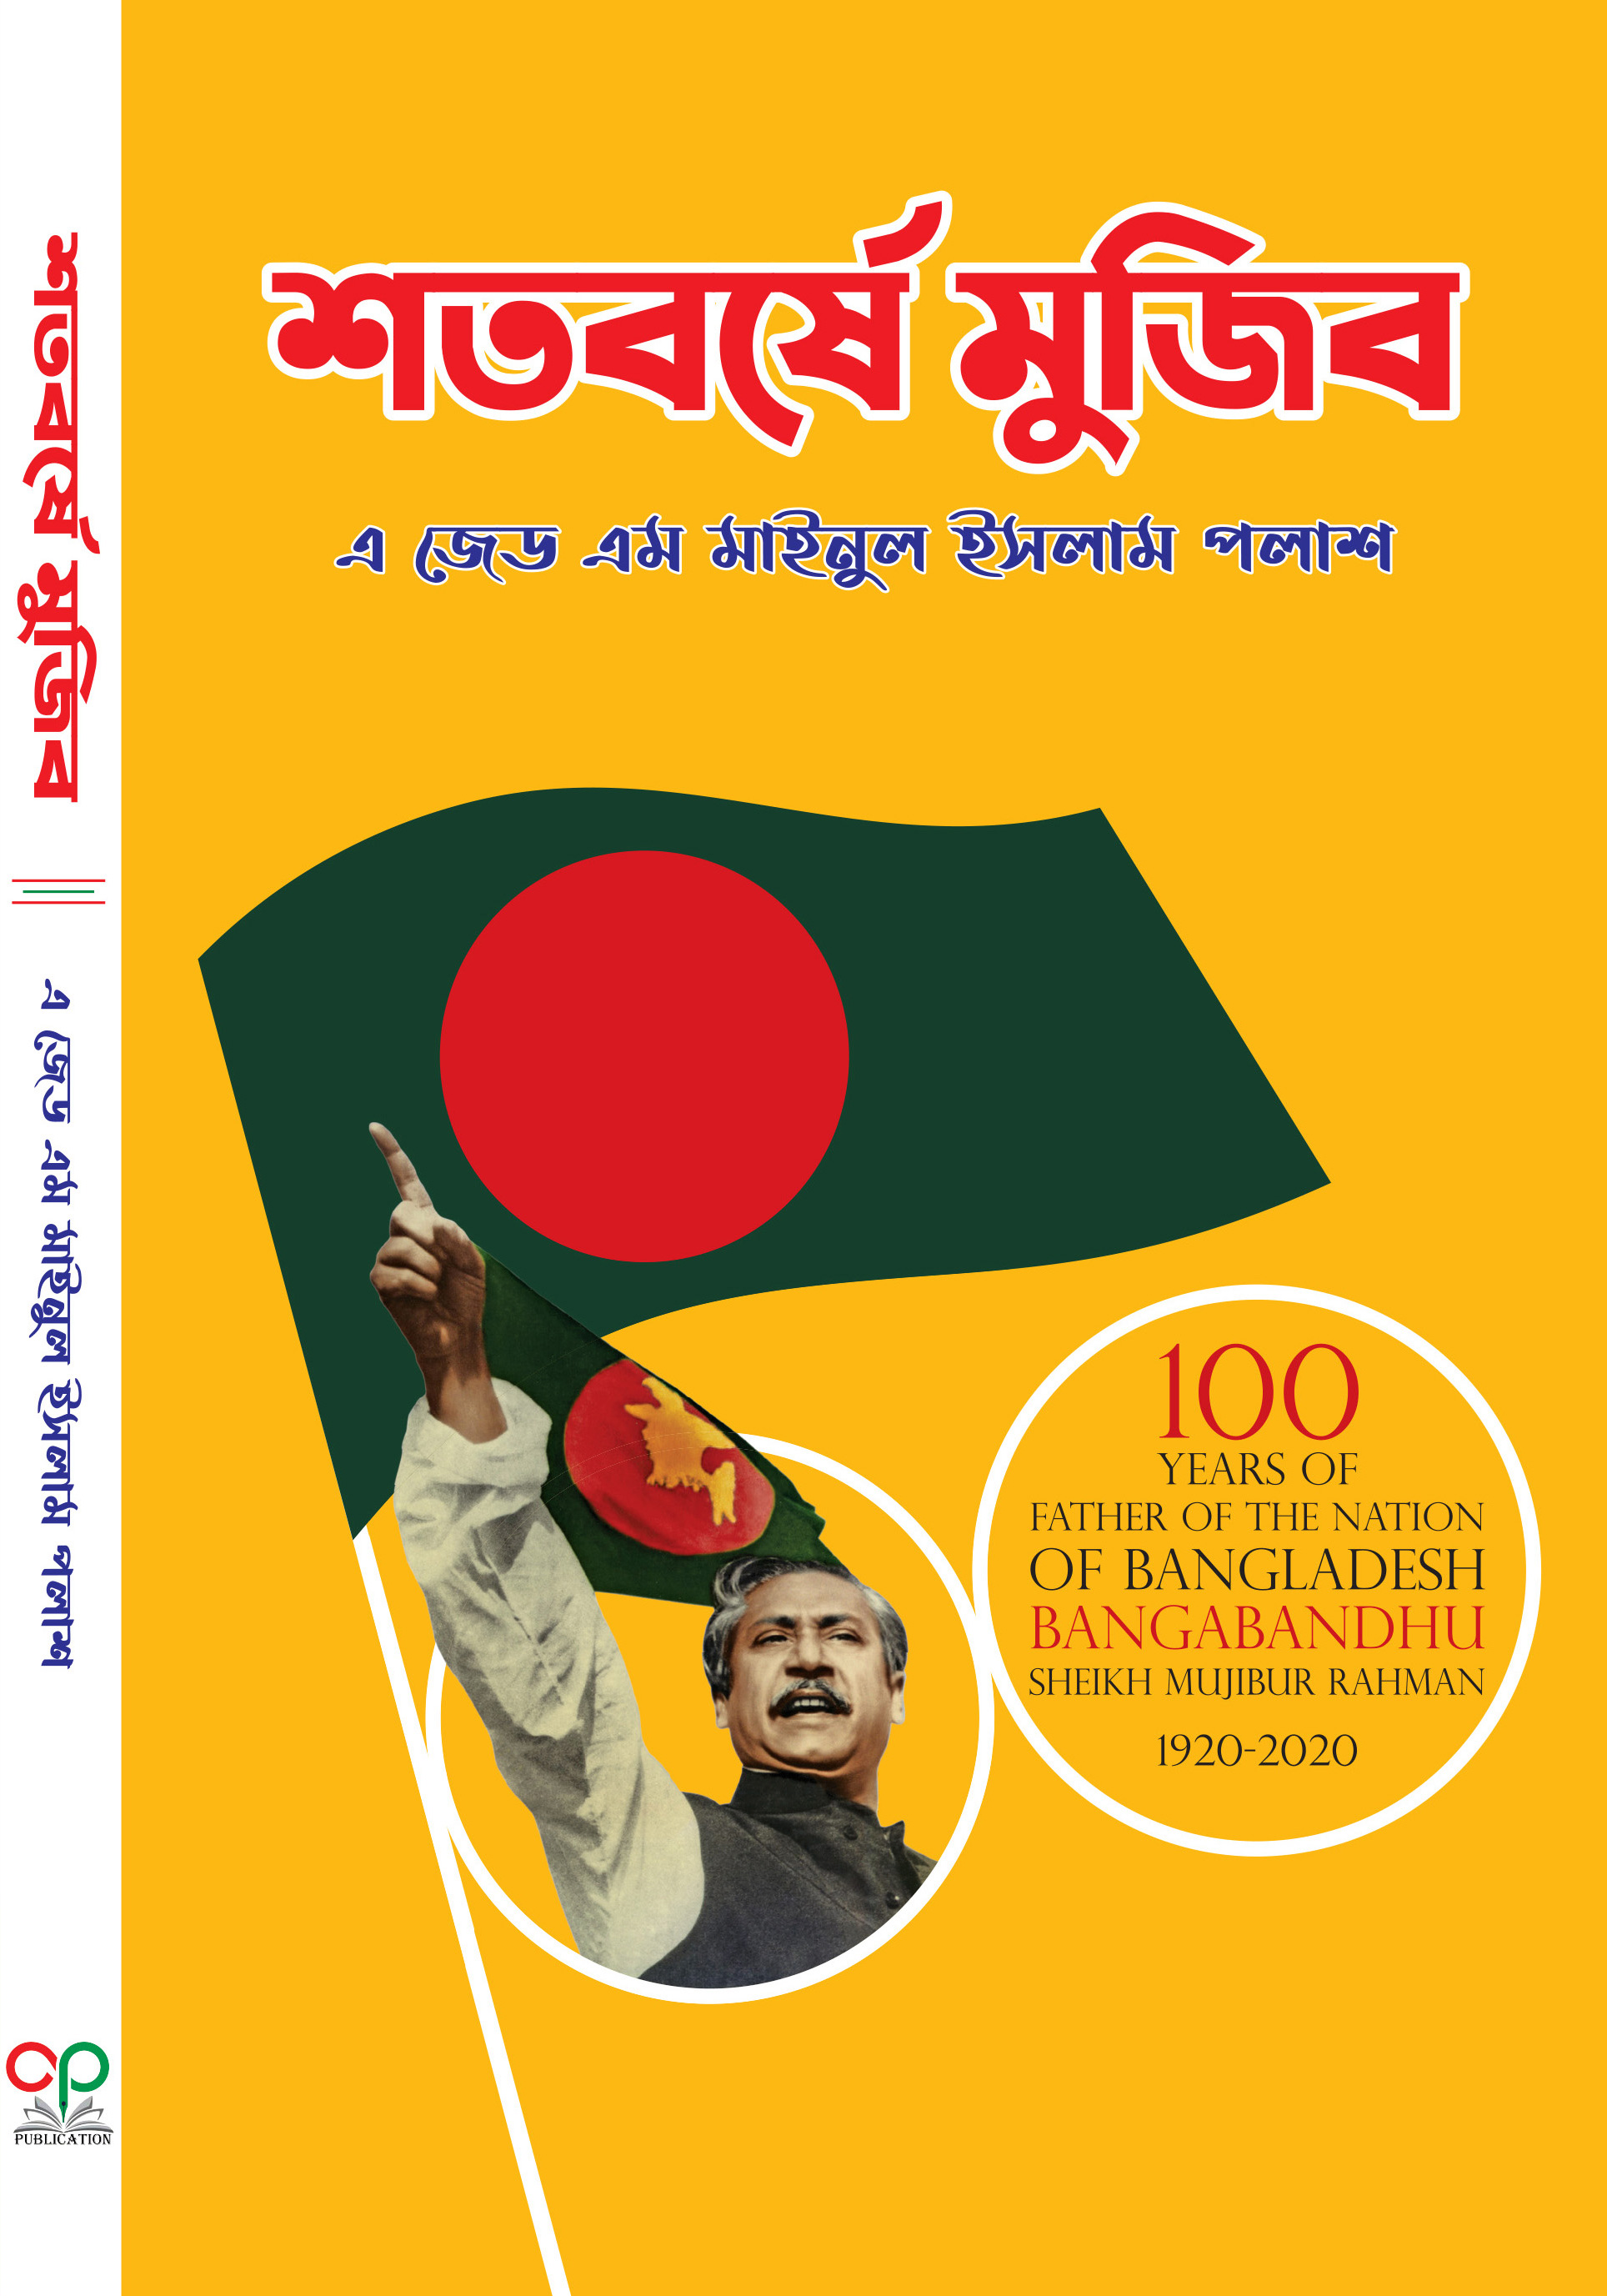 Shotoborshe Mujib By A Z M Mainul Islam Palash. Published by Crime Protidin Media & Publication. Price : Tk. 200.00 Only US $ 5.00, ISBN: 978-984-95273-0-5